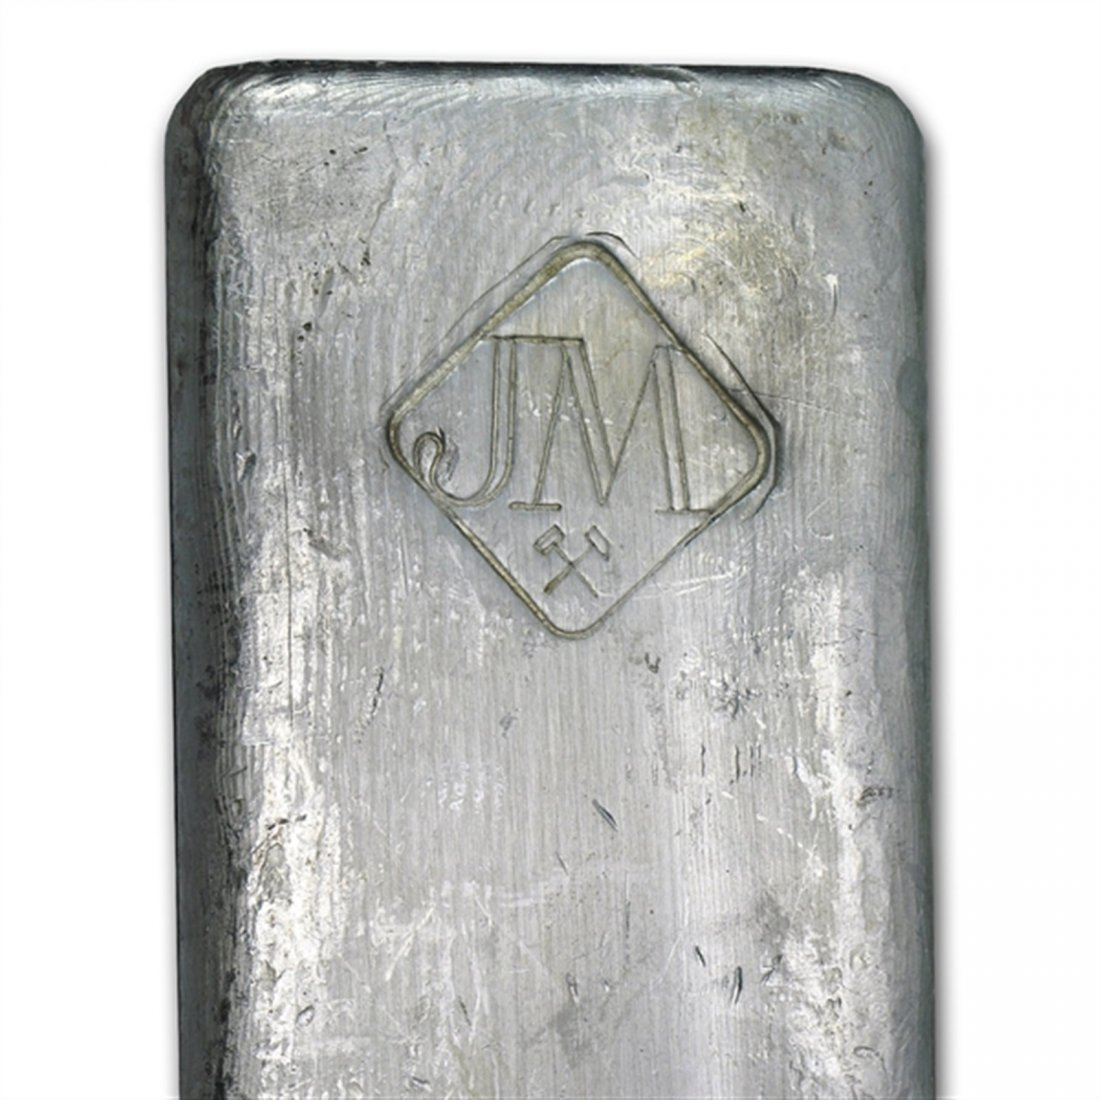 50 oz Johnson Matthey (Canada, Vintage) Silver Bar .999